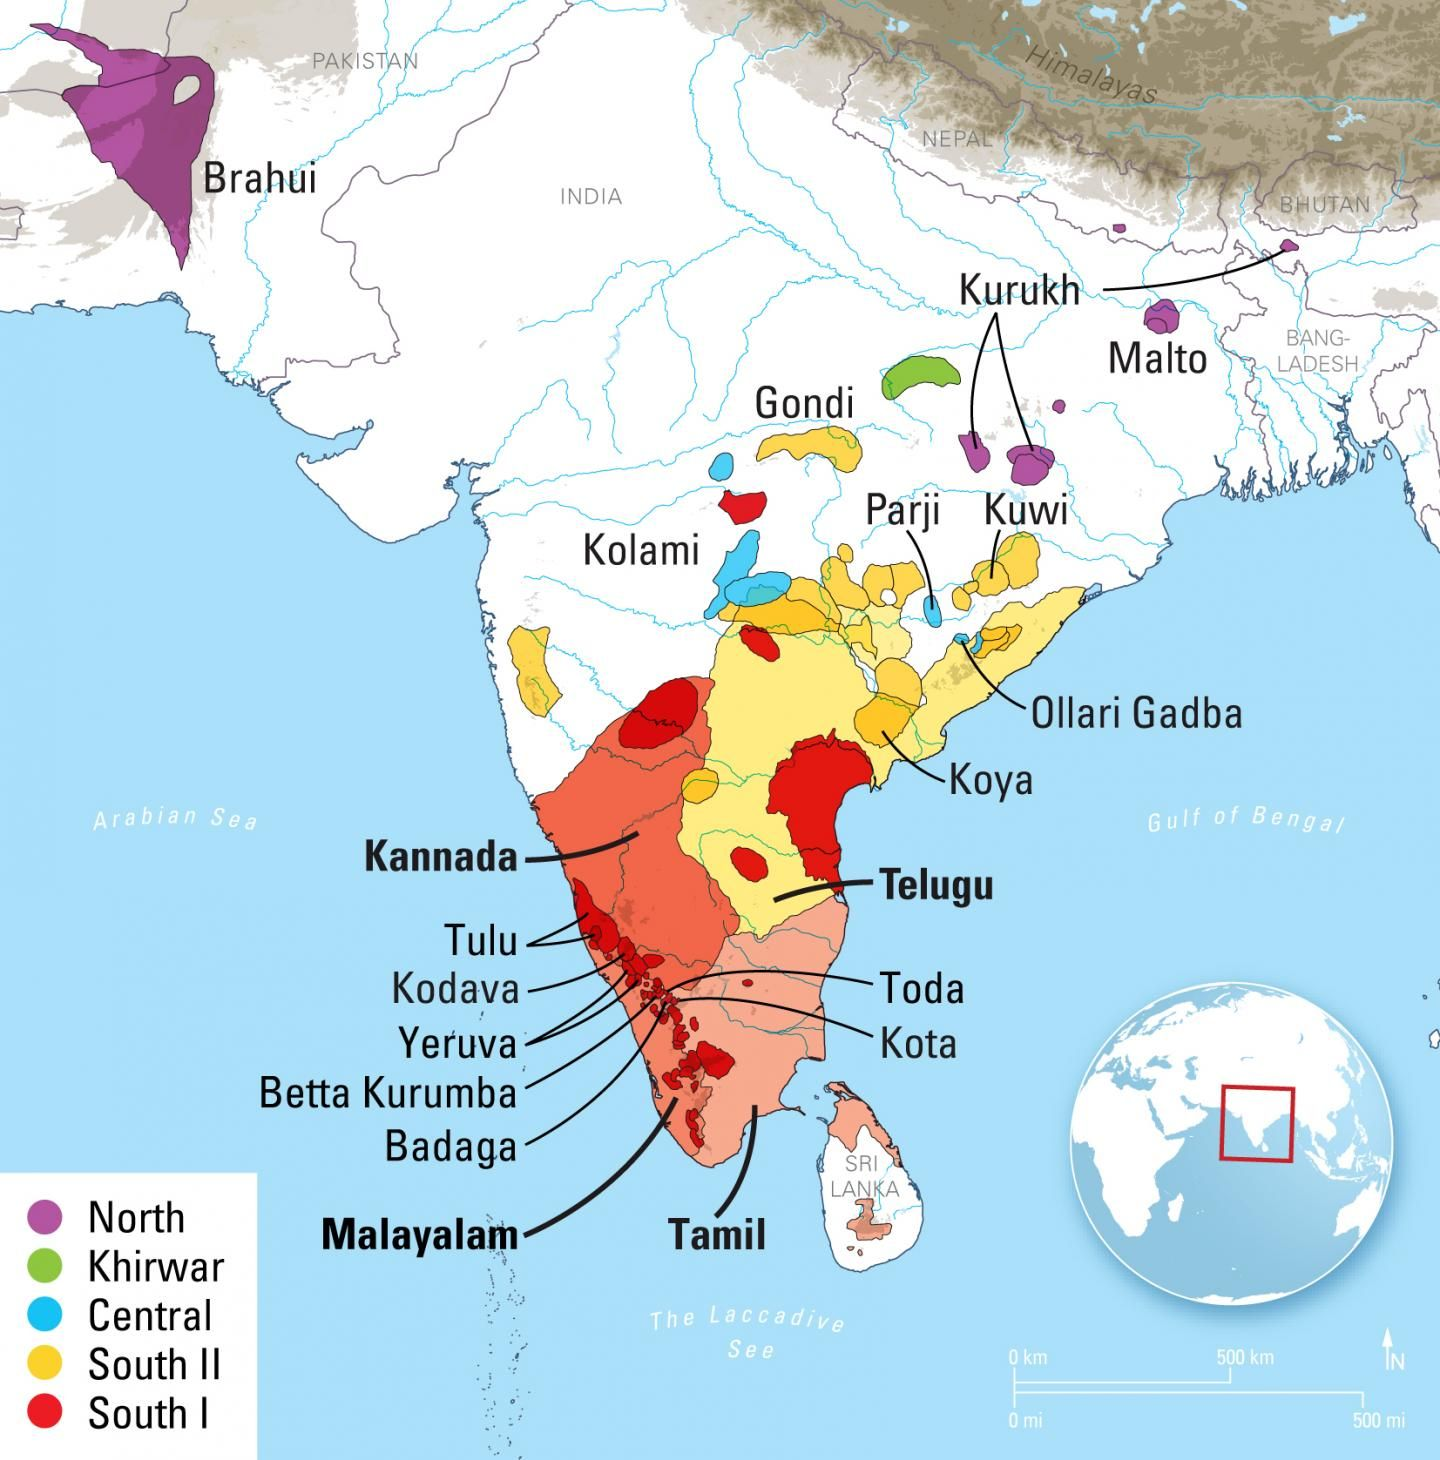 New linguistic analysis finds Dravidian language family is ...